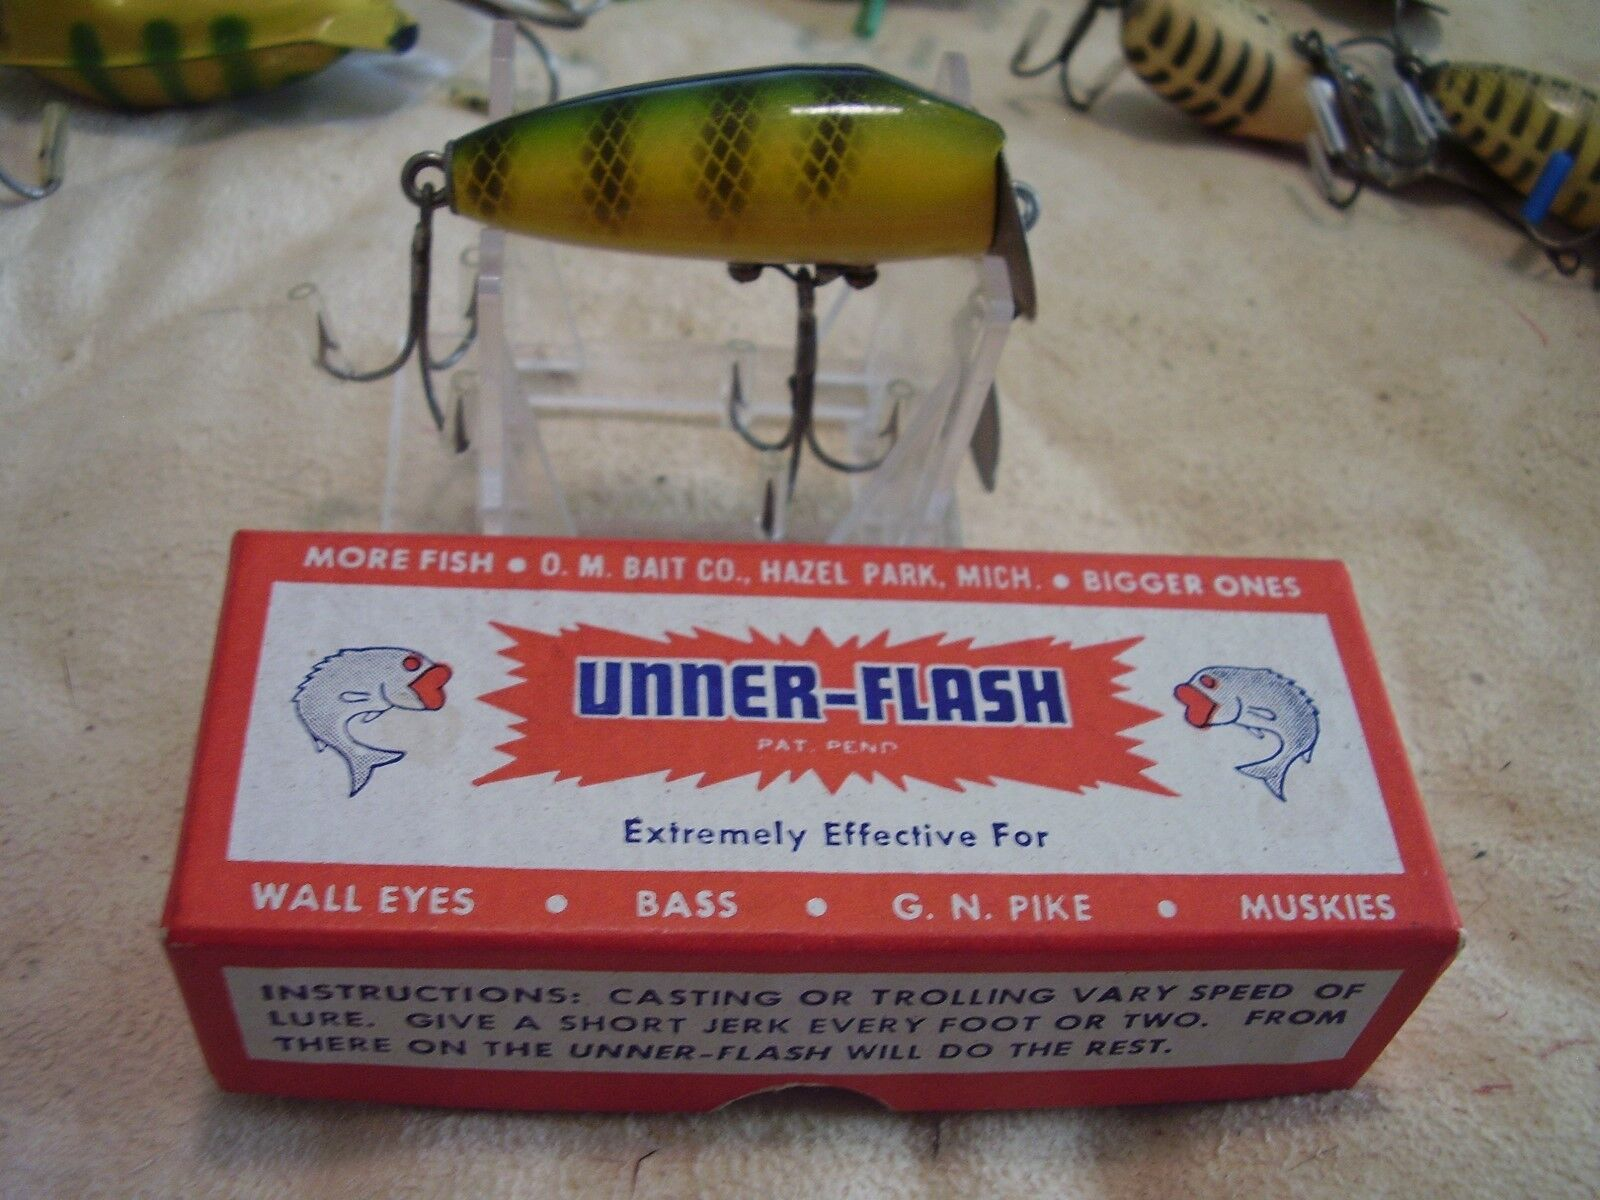 VINTAGE O.M. BAIT CO. UNNER-FLASH MADE IN MICH. IN 1938 WITH BOX & PAPERWORK